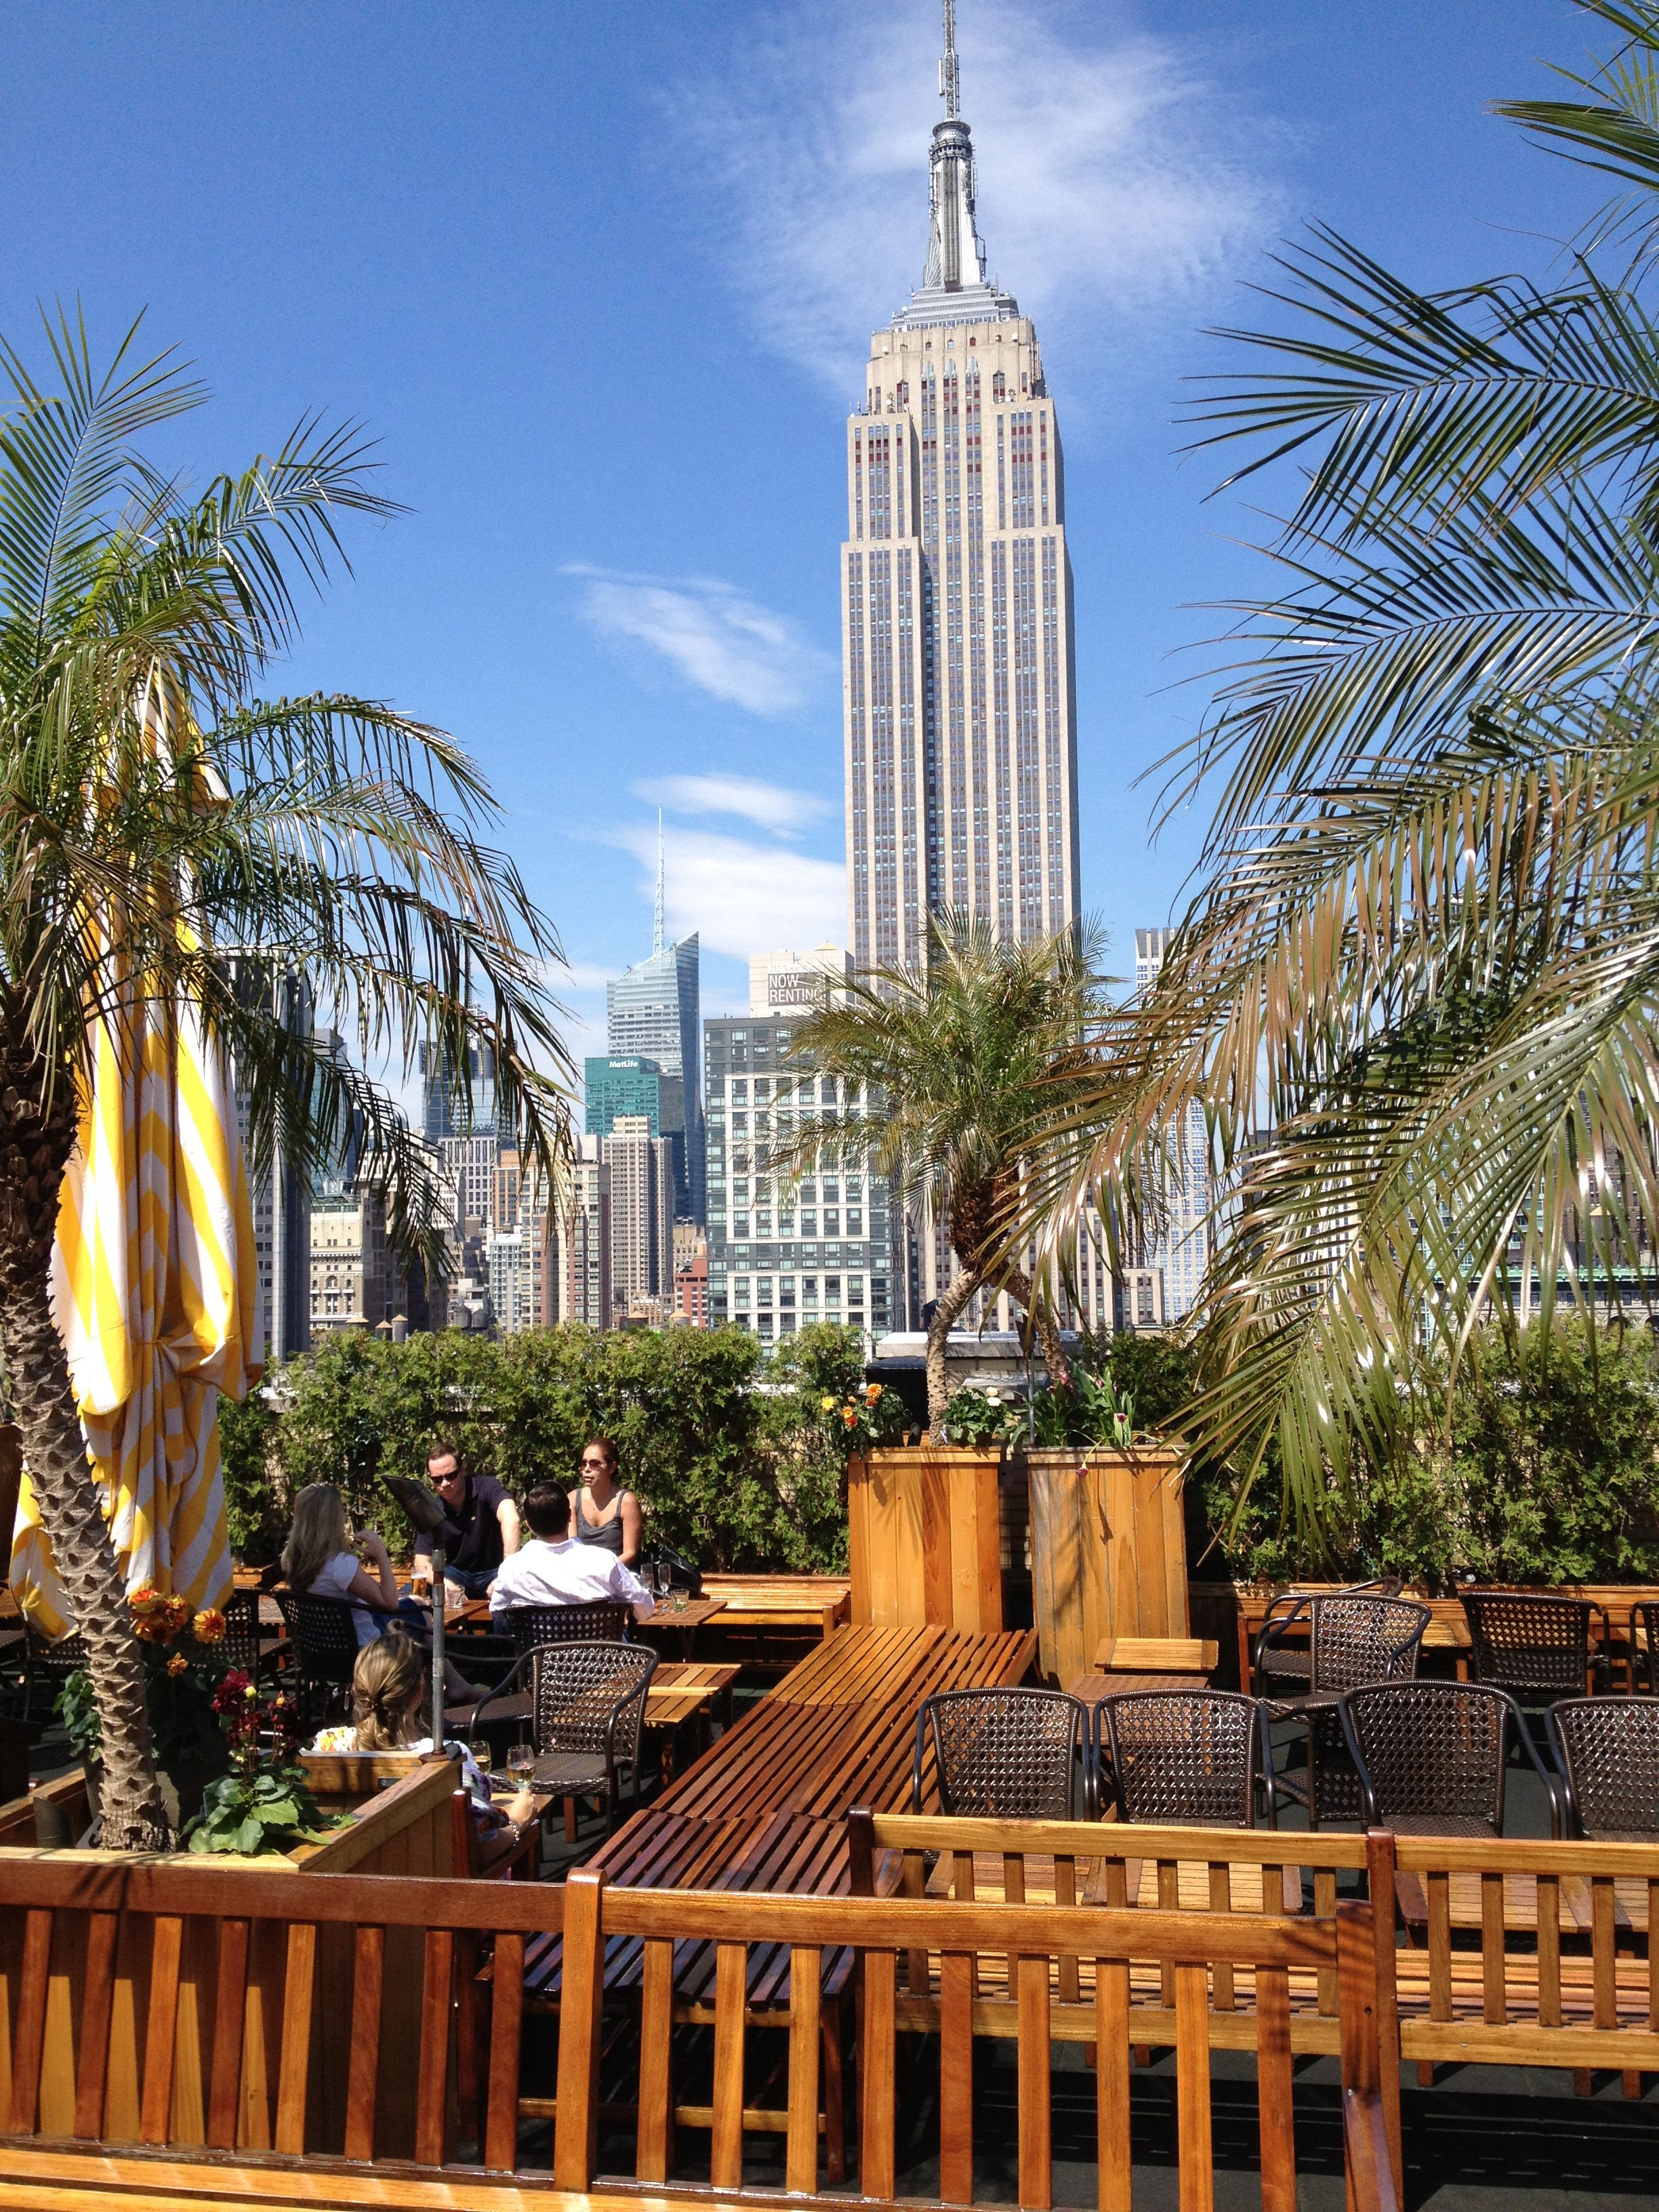 230 Fifth Rooftop Bar Good Garden Rooftop Bar With View Of The